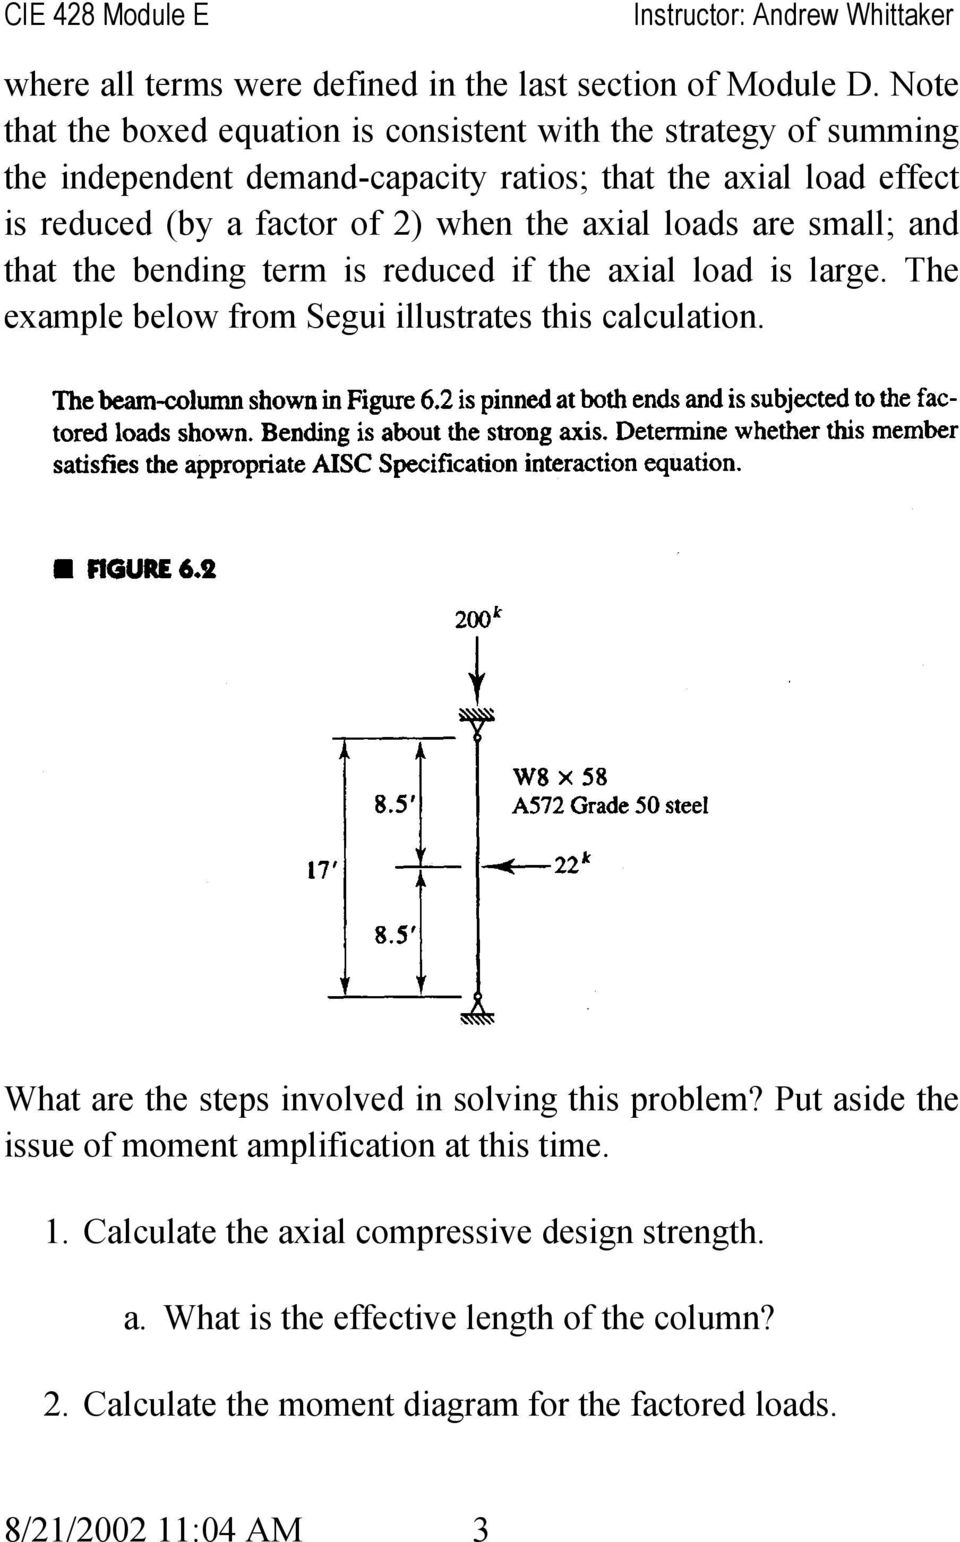 when the axial loads are small; and that the bending term is reduced if the axial load is large. The example below from Segui illustrates this calculation.